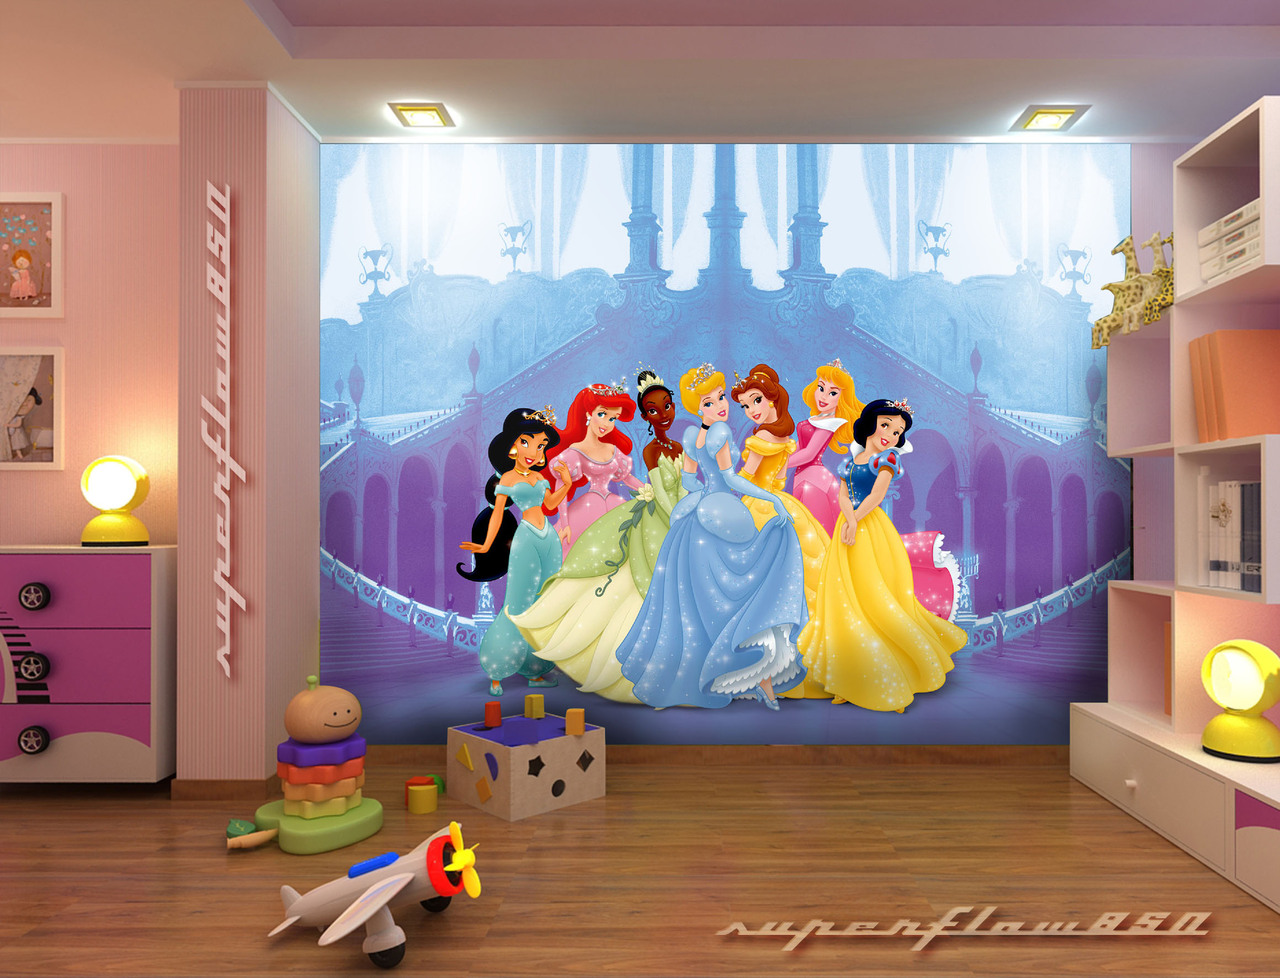 Childrens disney wallpaper murals